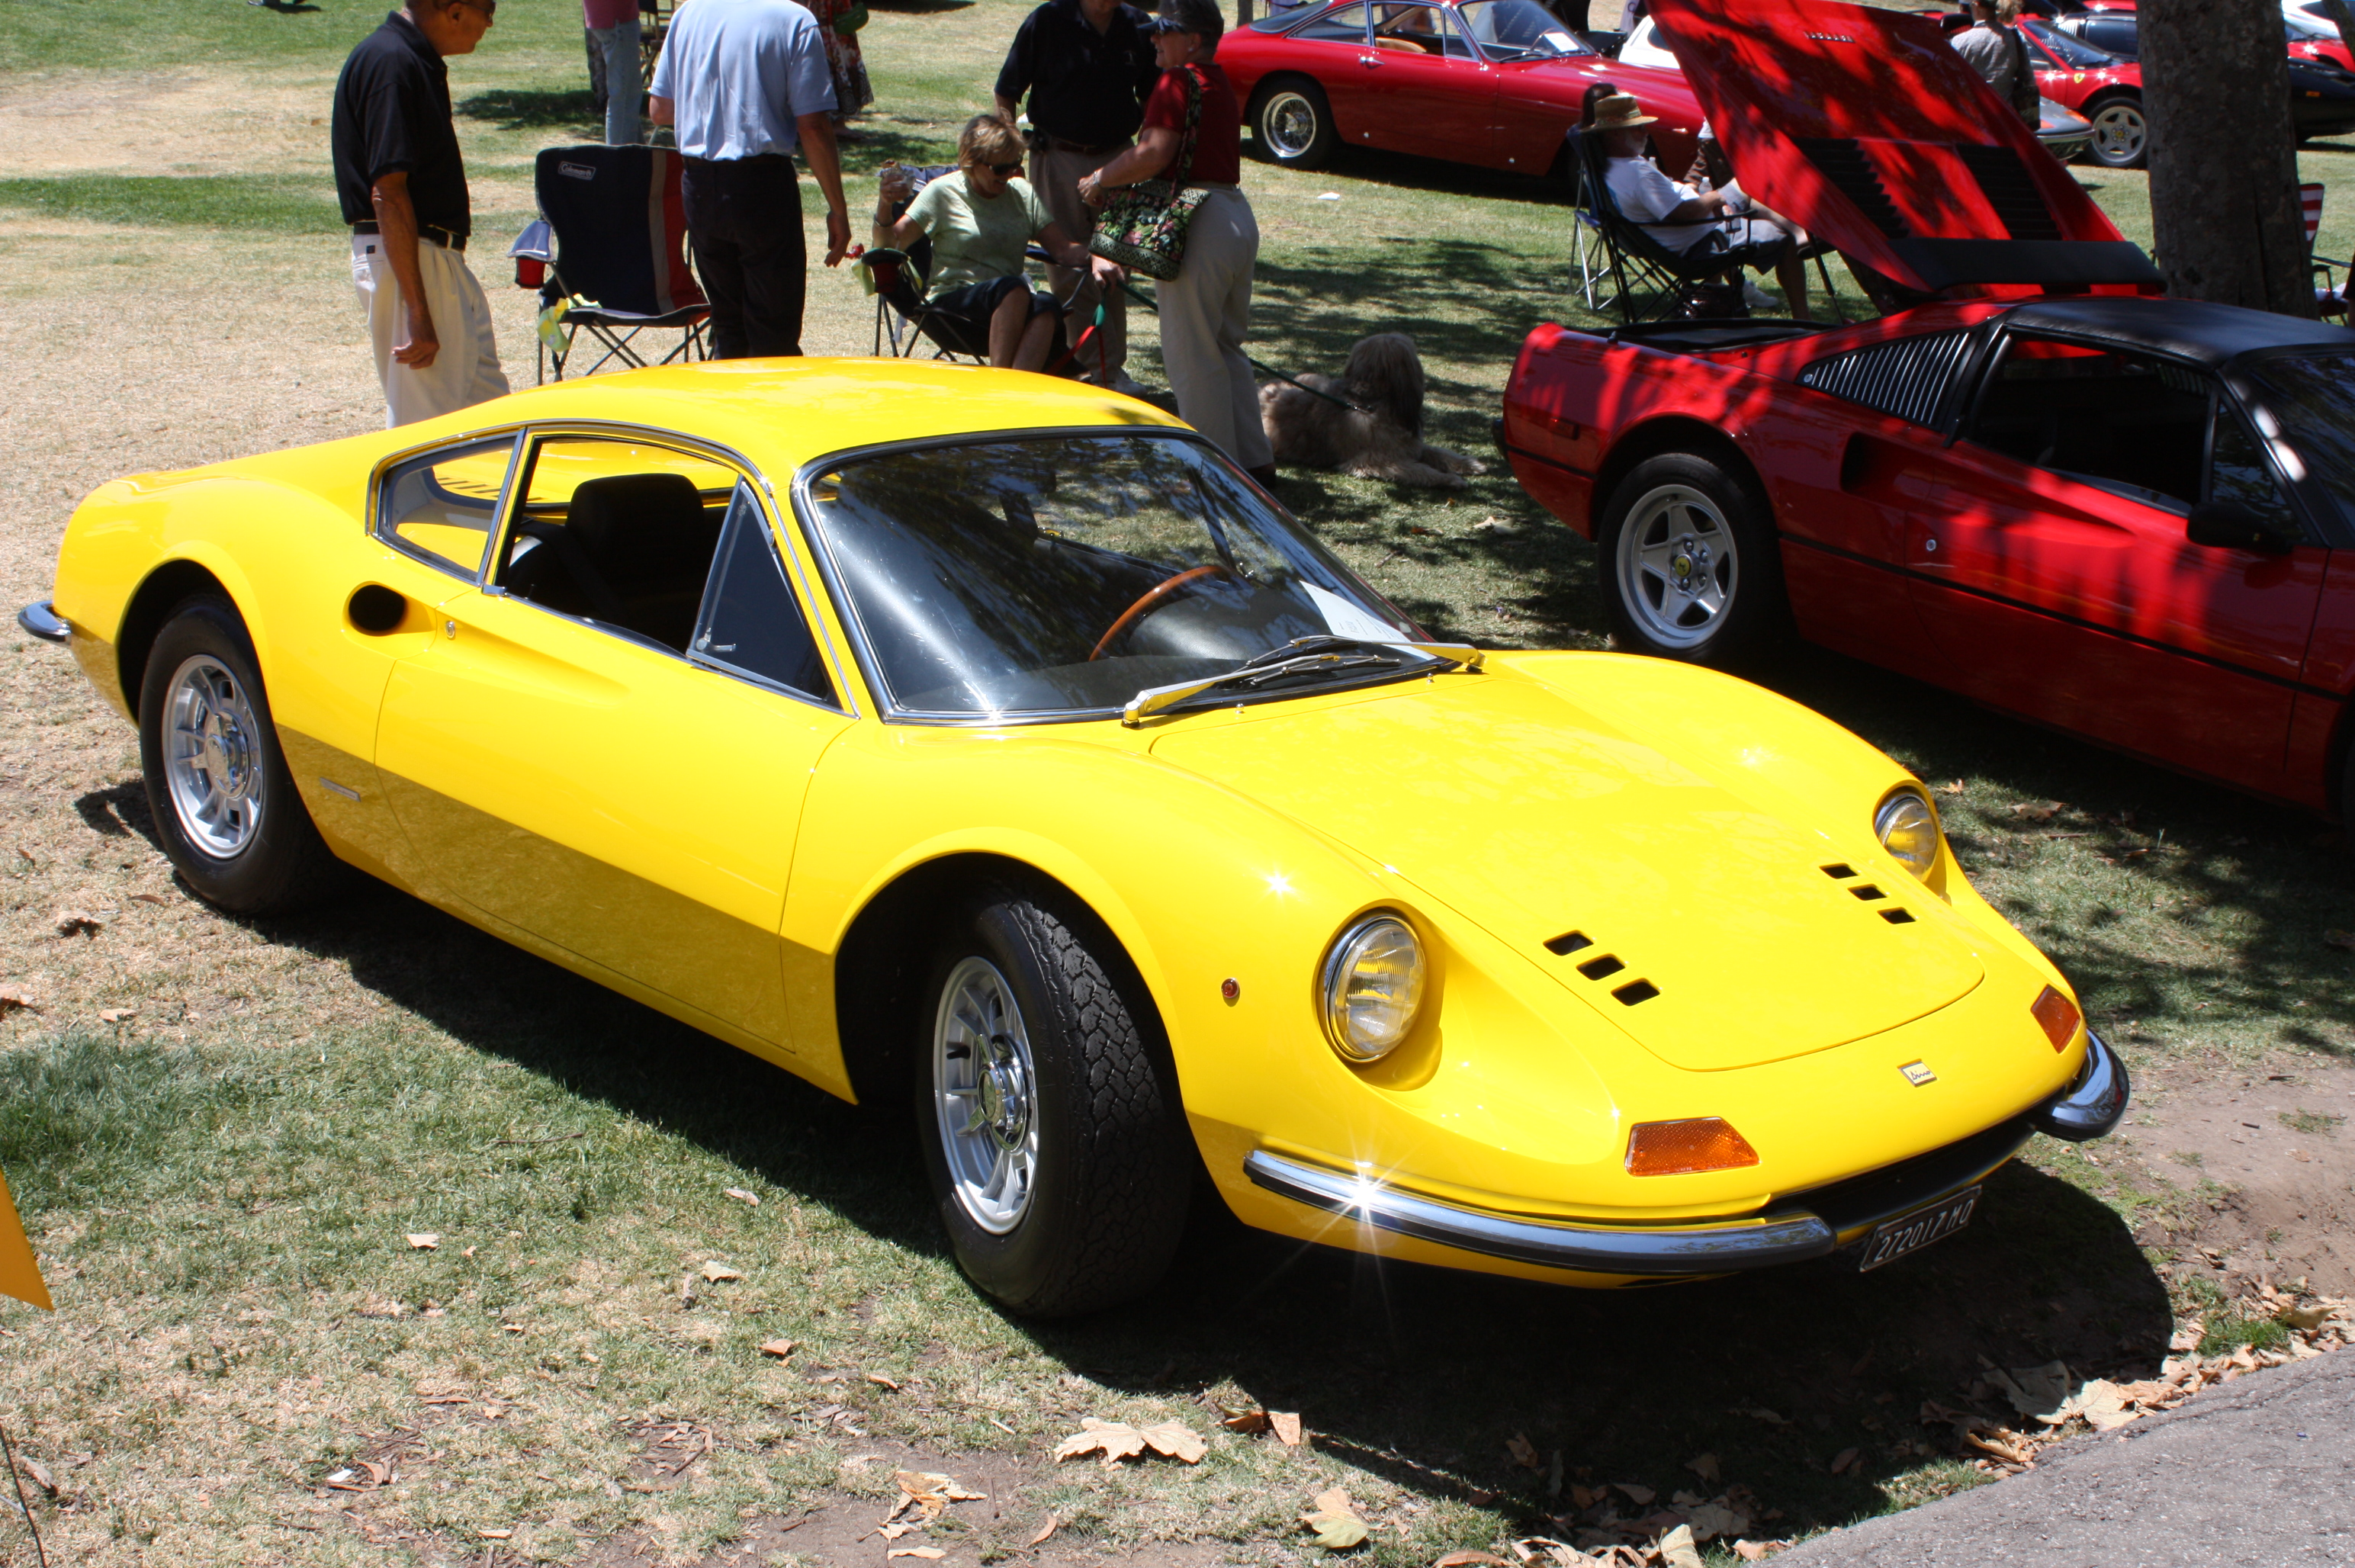 1968 Ferrari Dino 206 GT Boldride.com - Pictures, Wallpapers